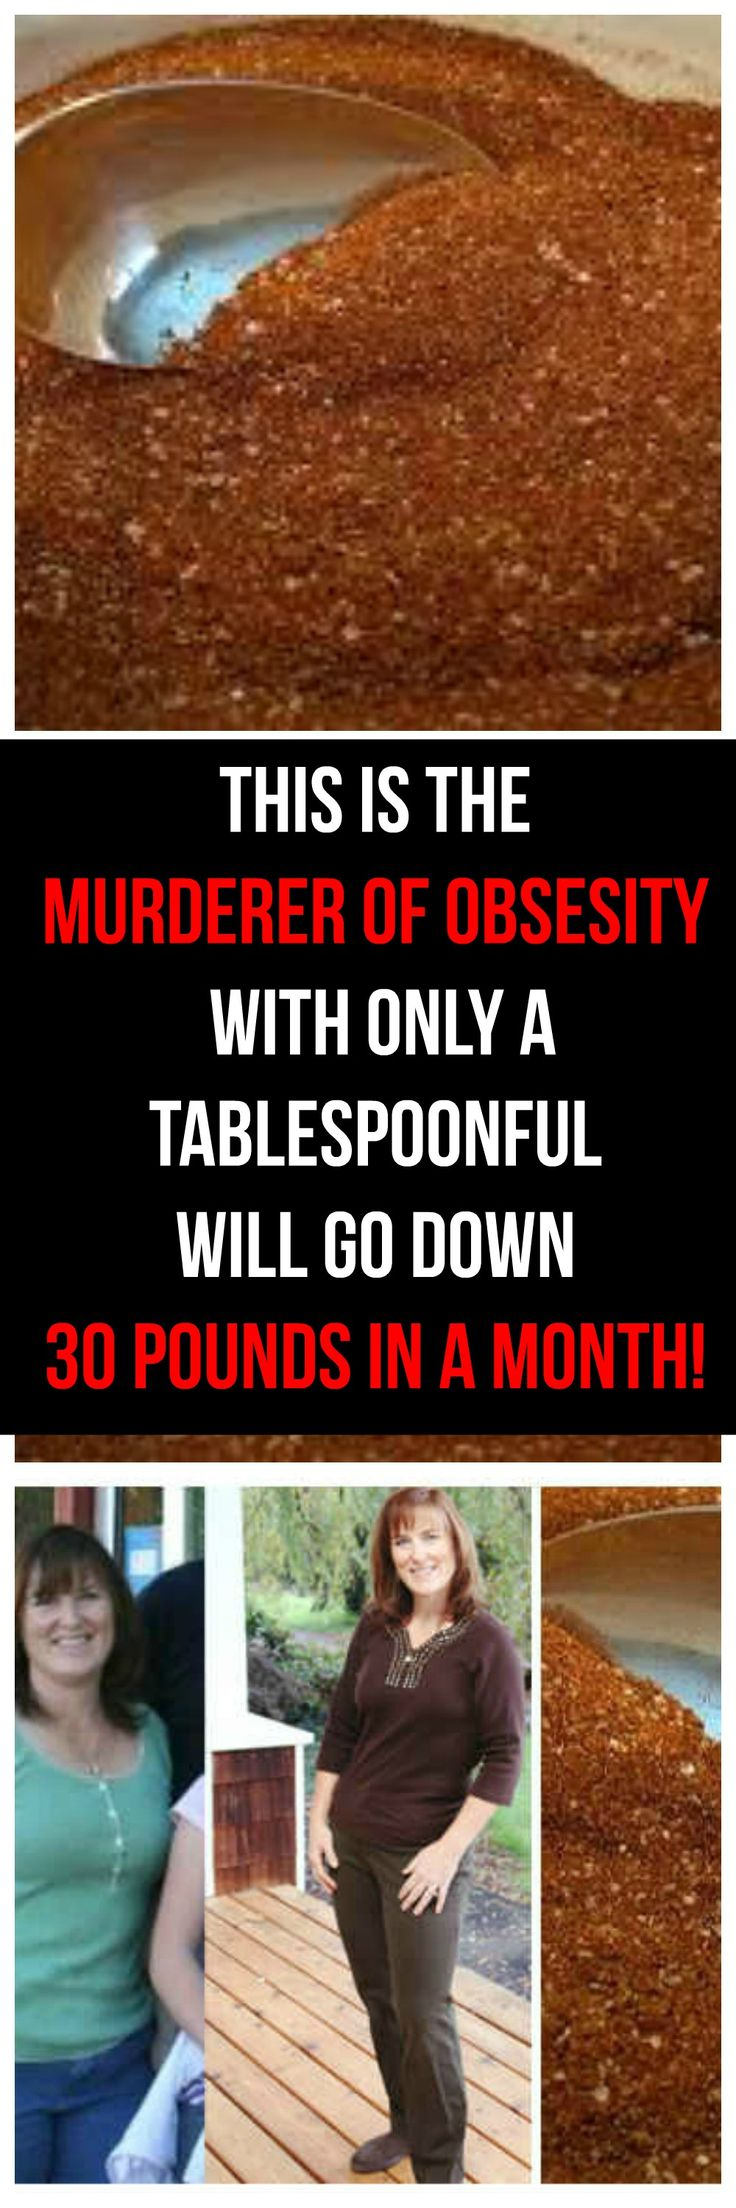 This Is the Murderer Of Obesity, With Only a Tablespoonful Will go Down 30 POUNDS IN A MONTH!!!